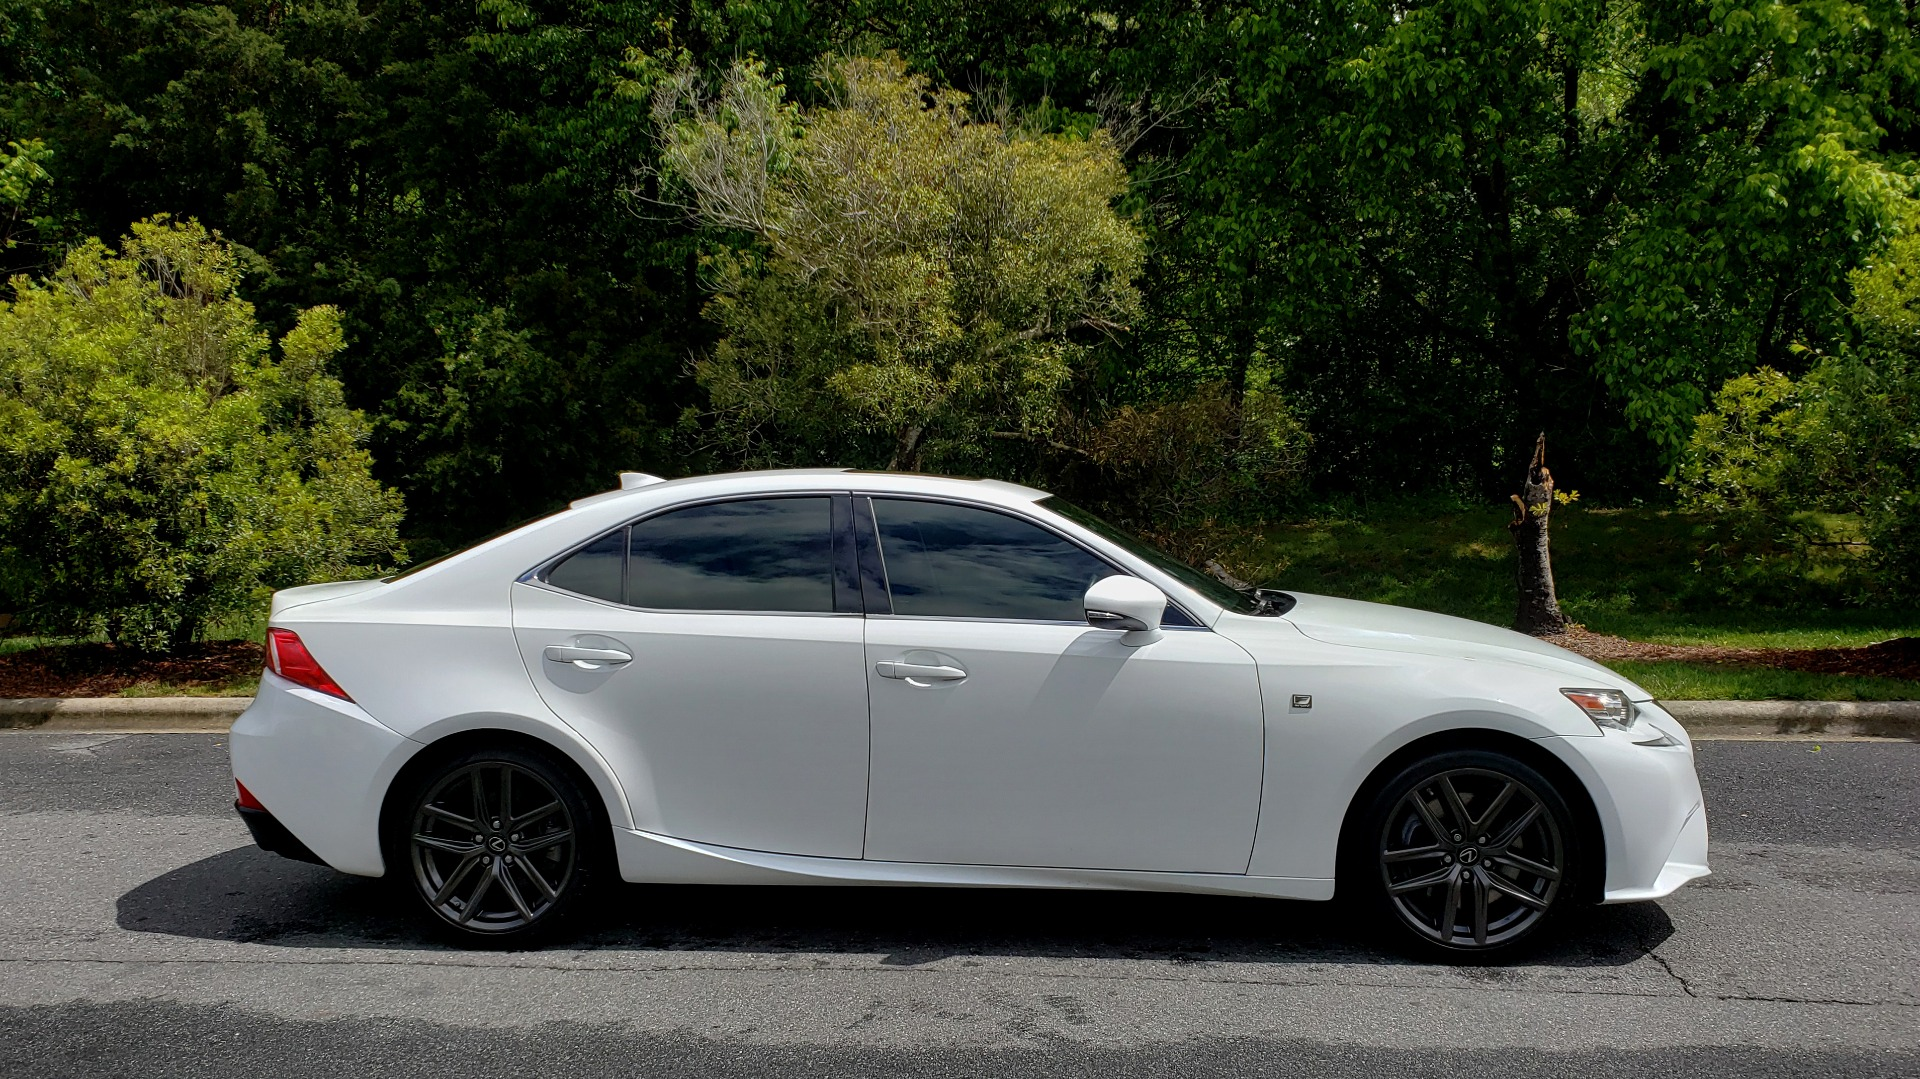 Used 2014 Lexus IS 350 F-SPORT / NAV / SUNROOF / REARVIEW / BSM / MARK LEV SND for sale Sold at Formula Imports in Charlotte NC 28227 5